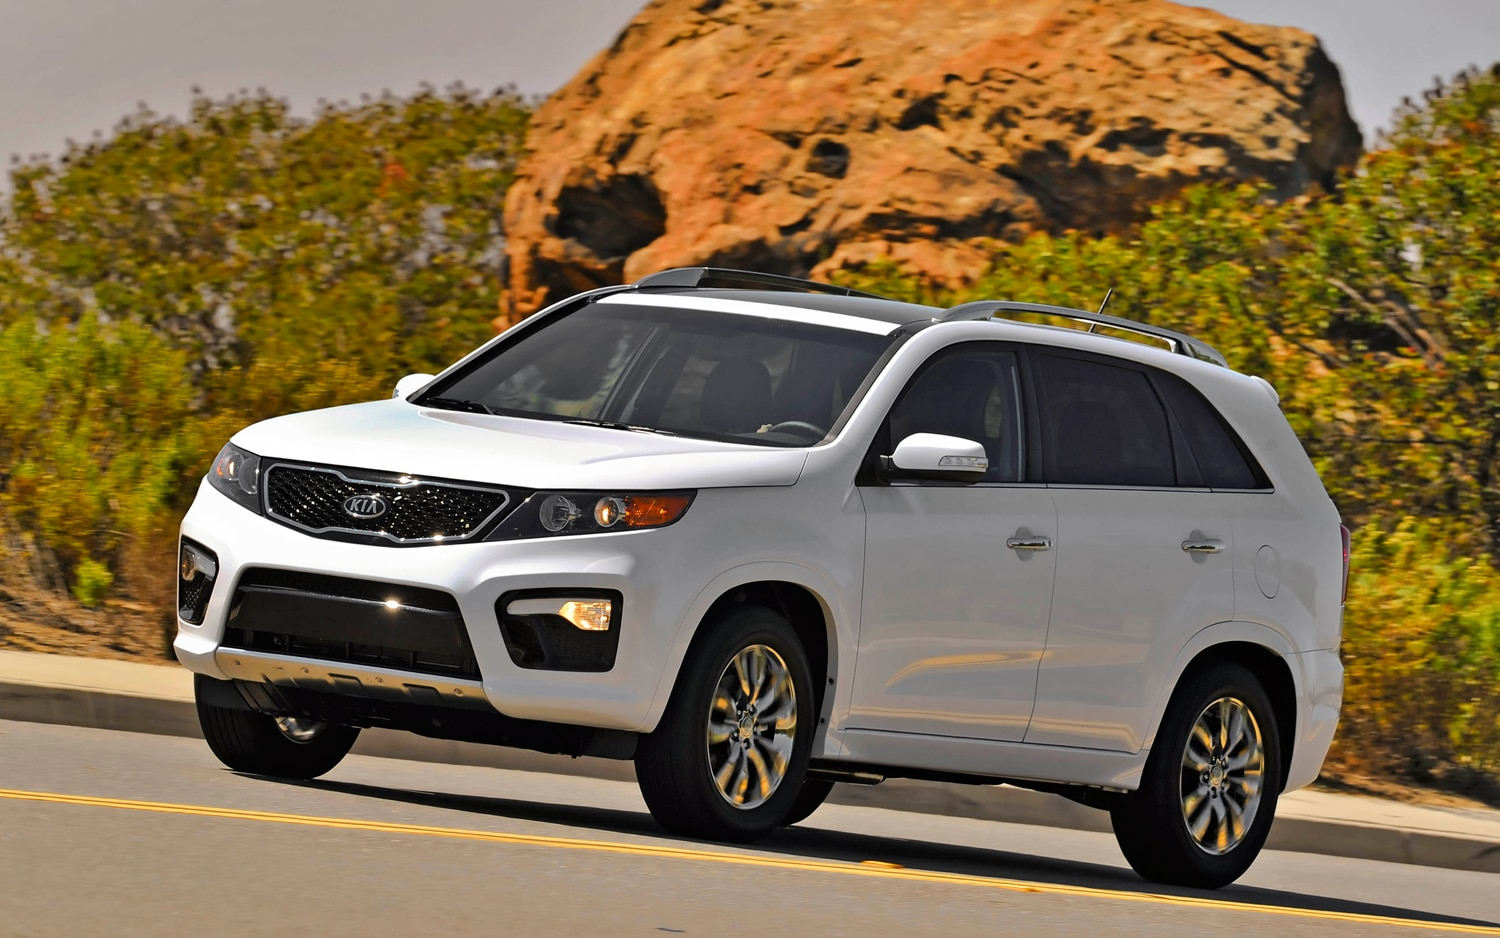 2012 Kia Sorento Front Left Side View 3